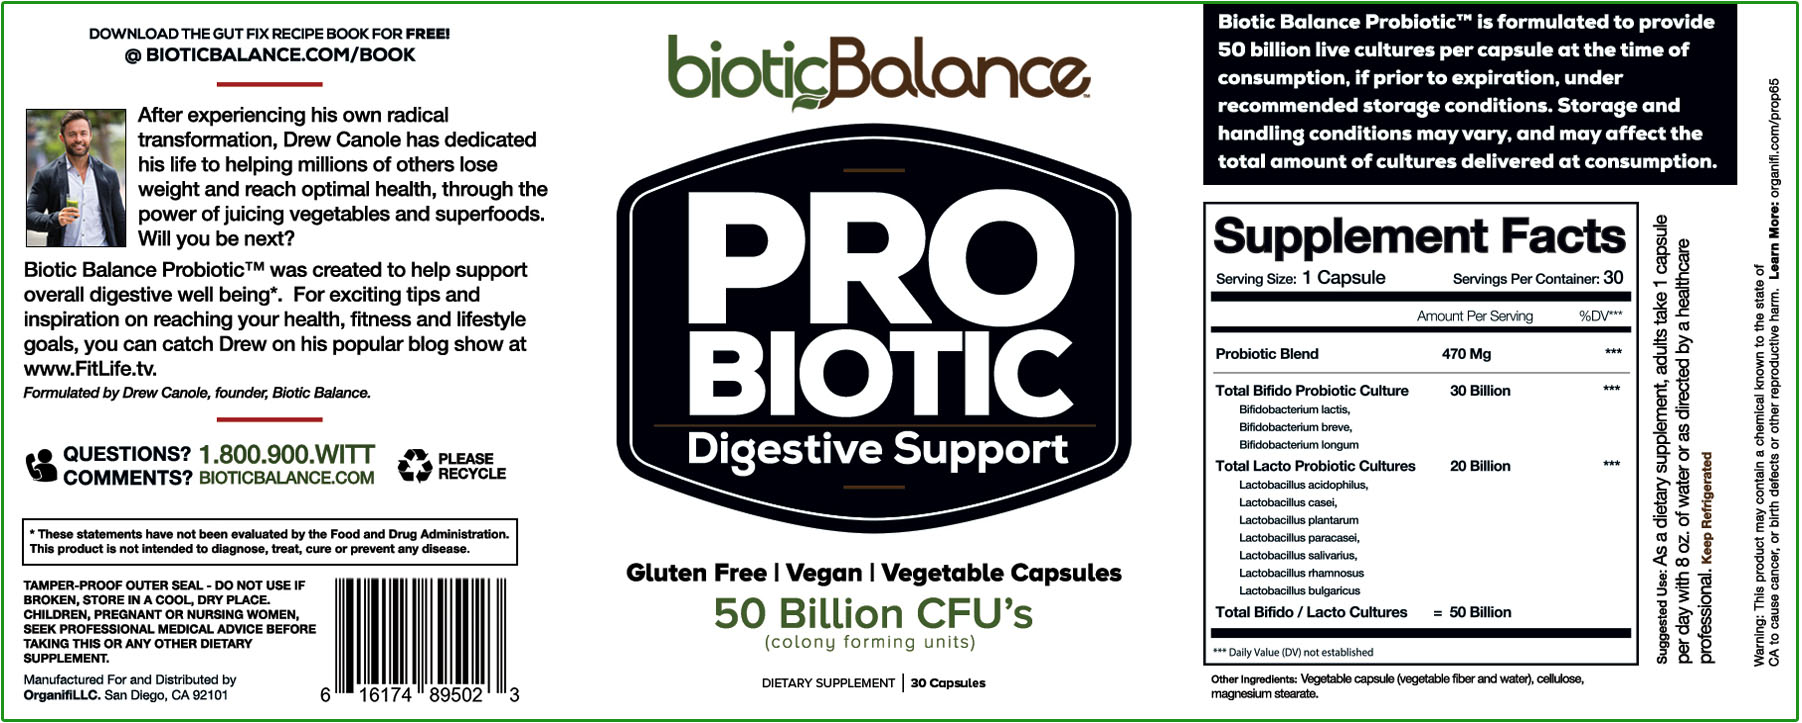 Biotic Balance Probiotics Ingredients